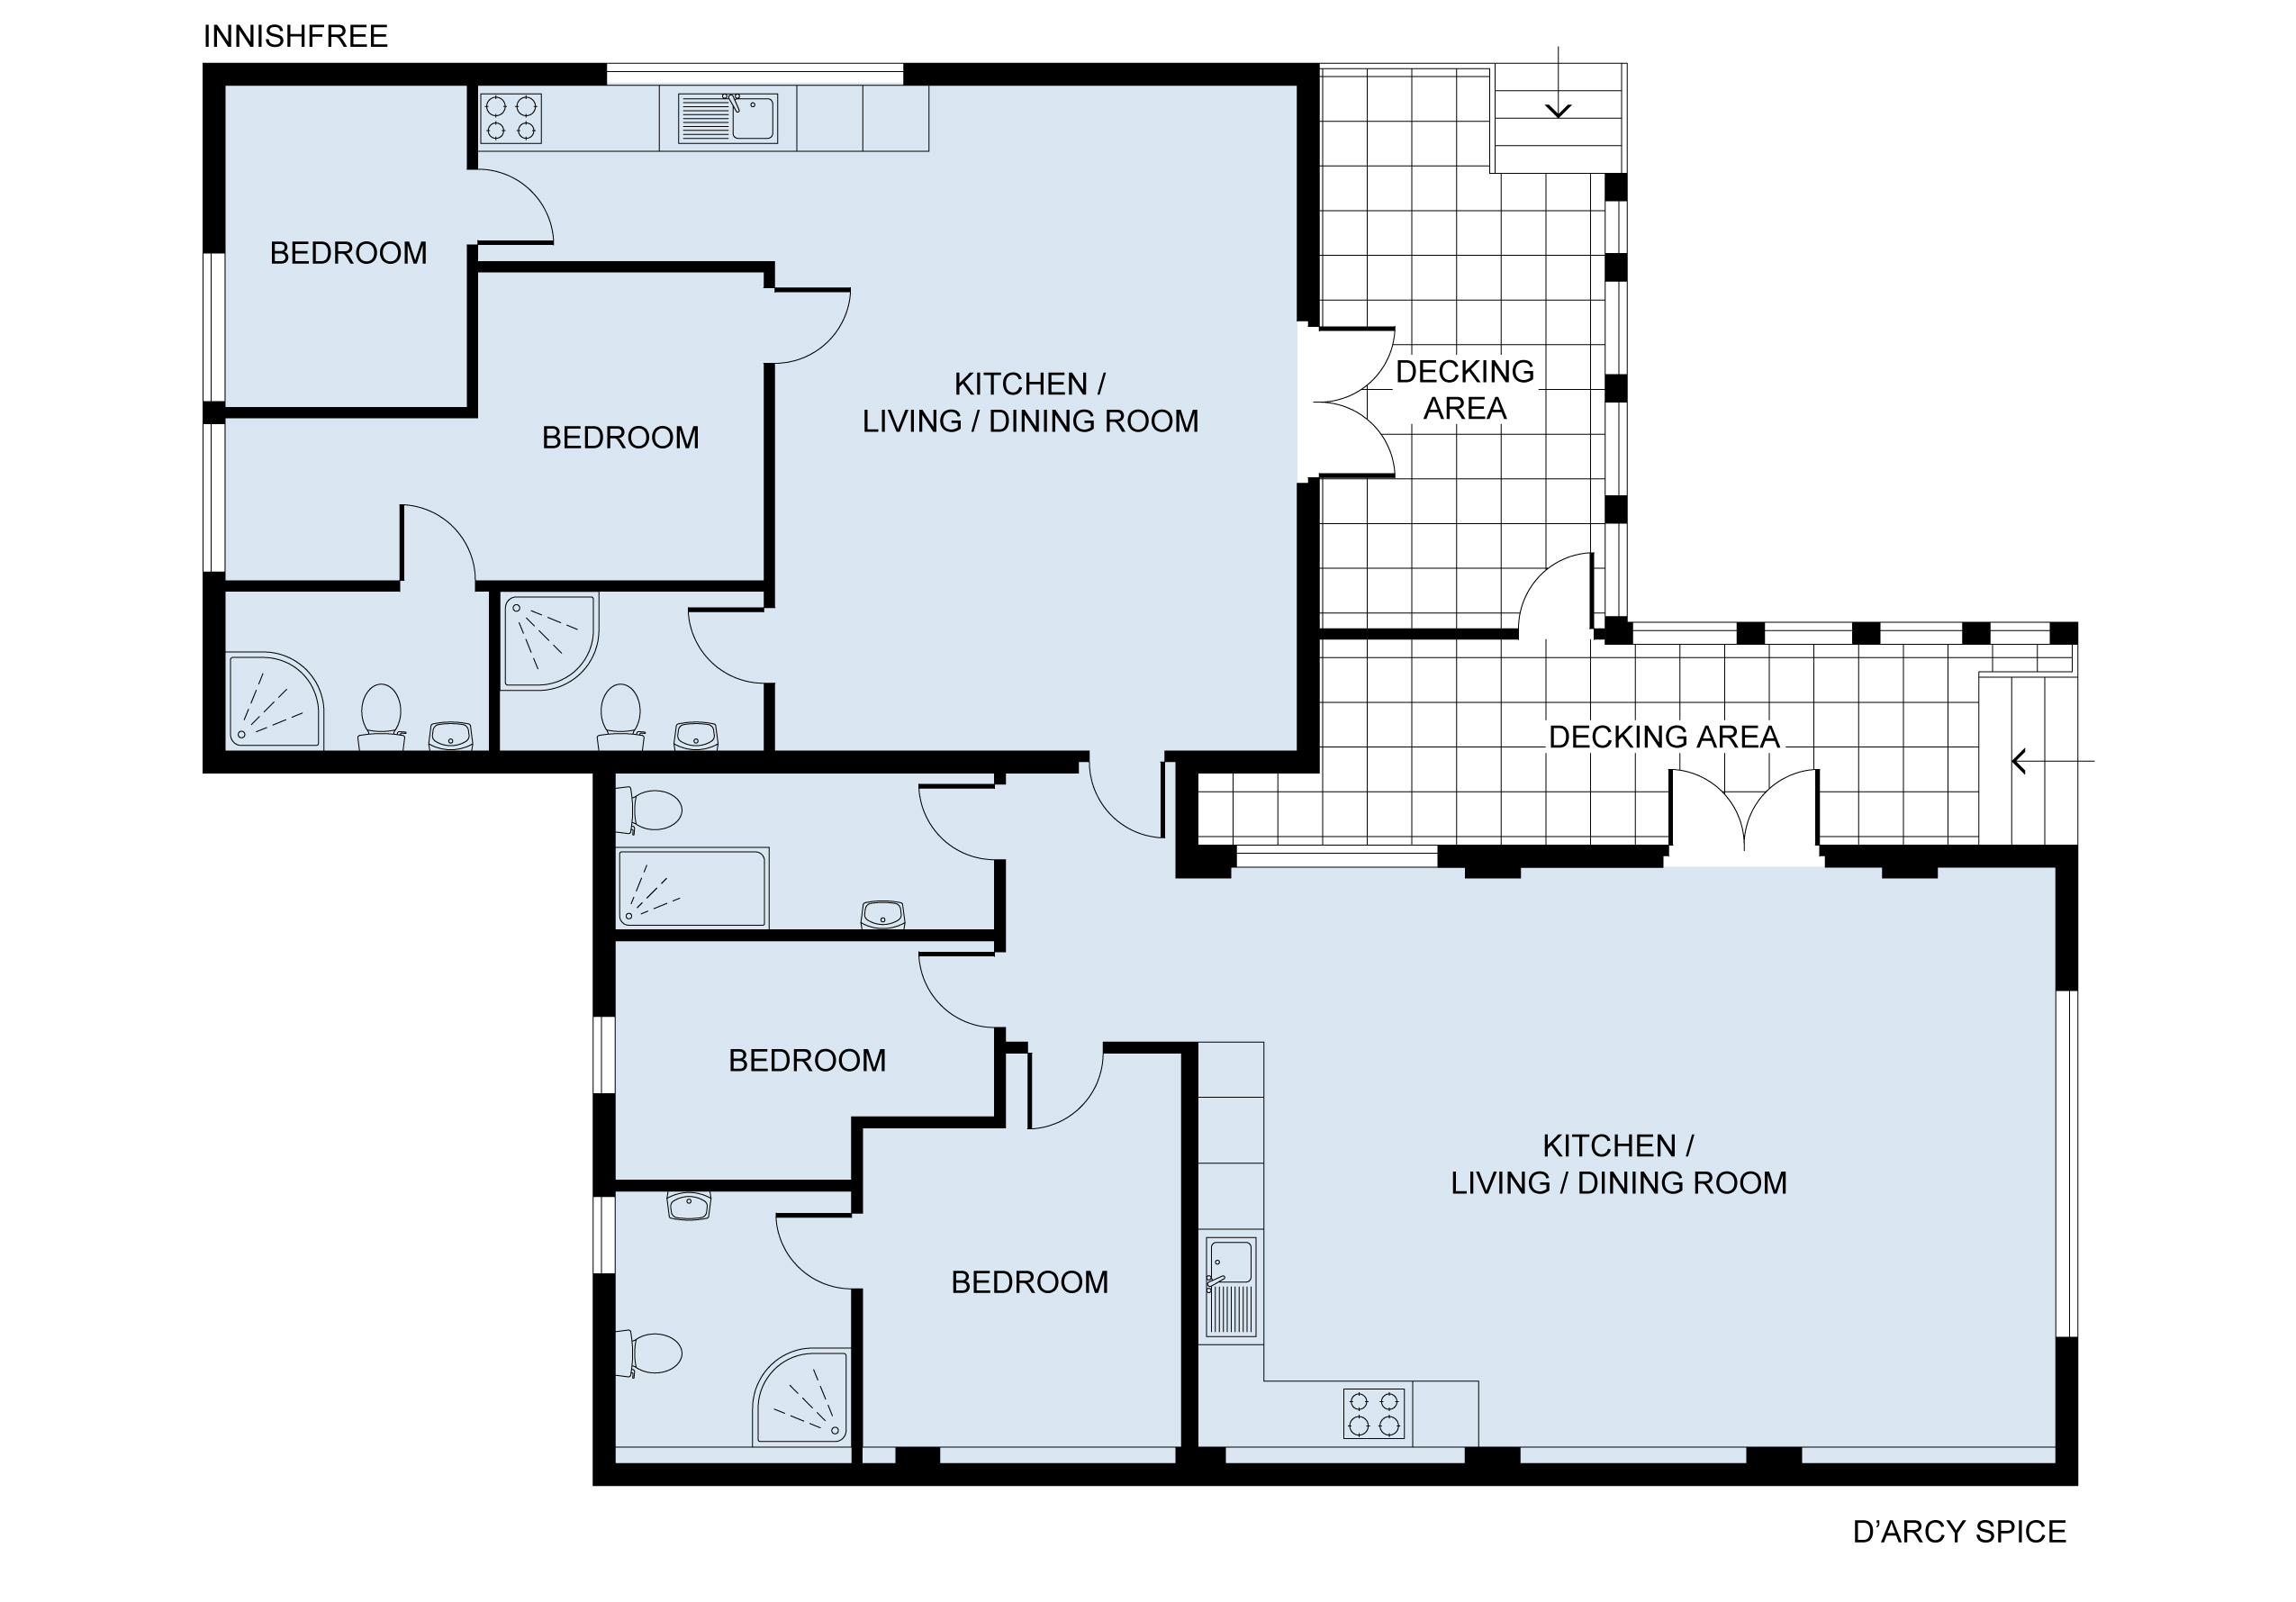 Floor plan D'Arcy Spice and adjoining Innishfree